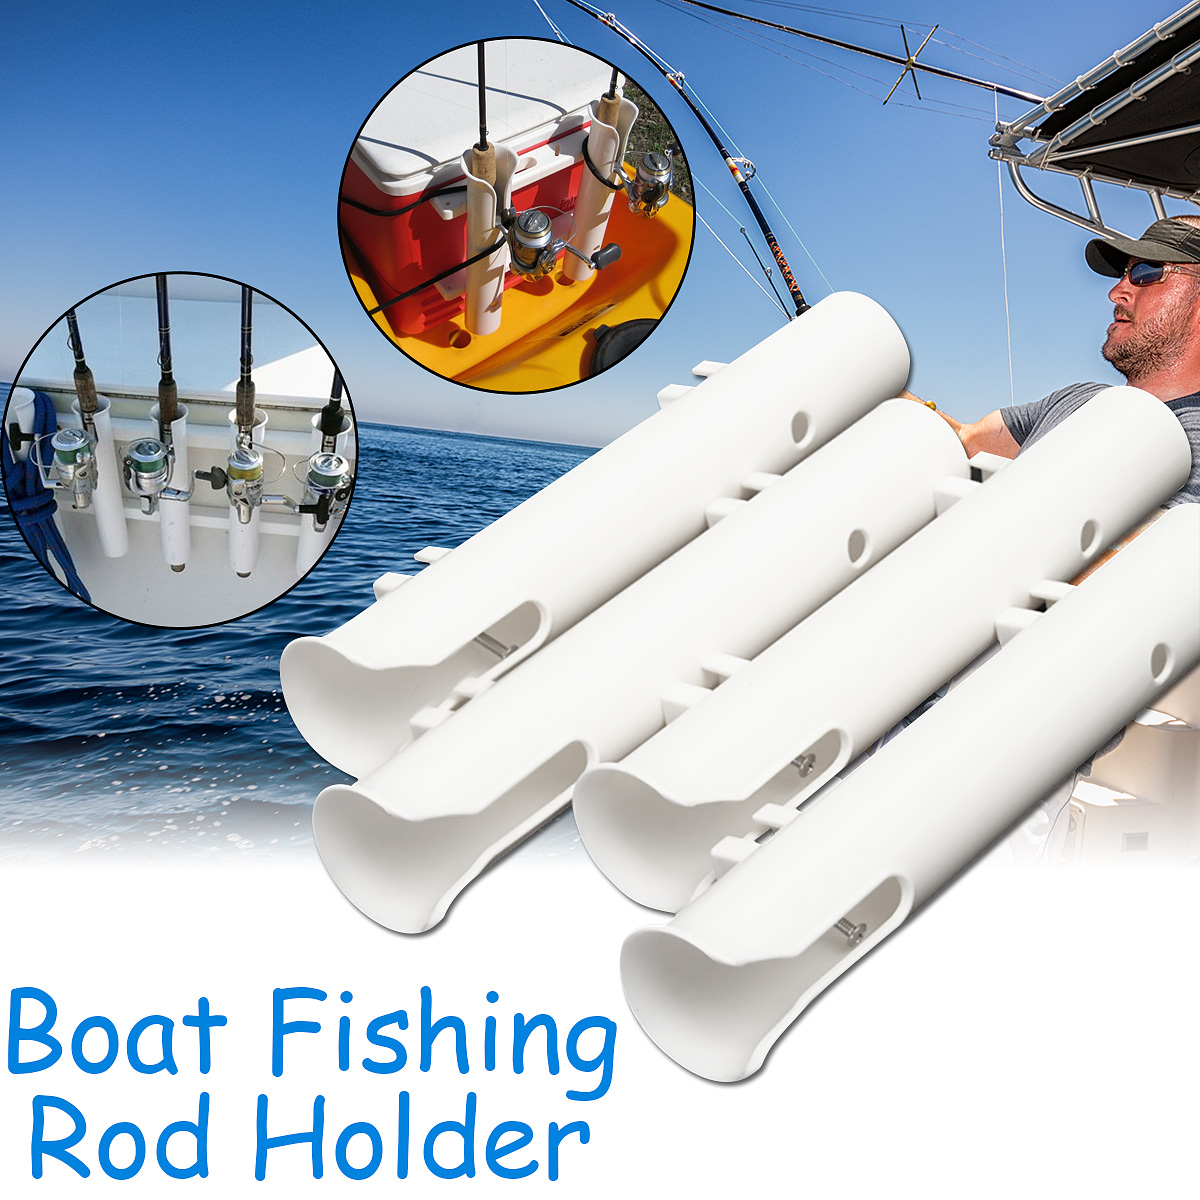 Universal Fishing Chair Attachments Your Zone Flip Cover Bobing Multi Functional Tools Holder 4pcs Lot Plastic 1 Tube Boat Rod Holders Marine Fish Pole Stand